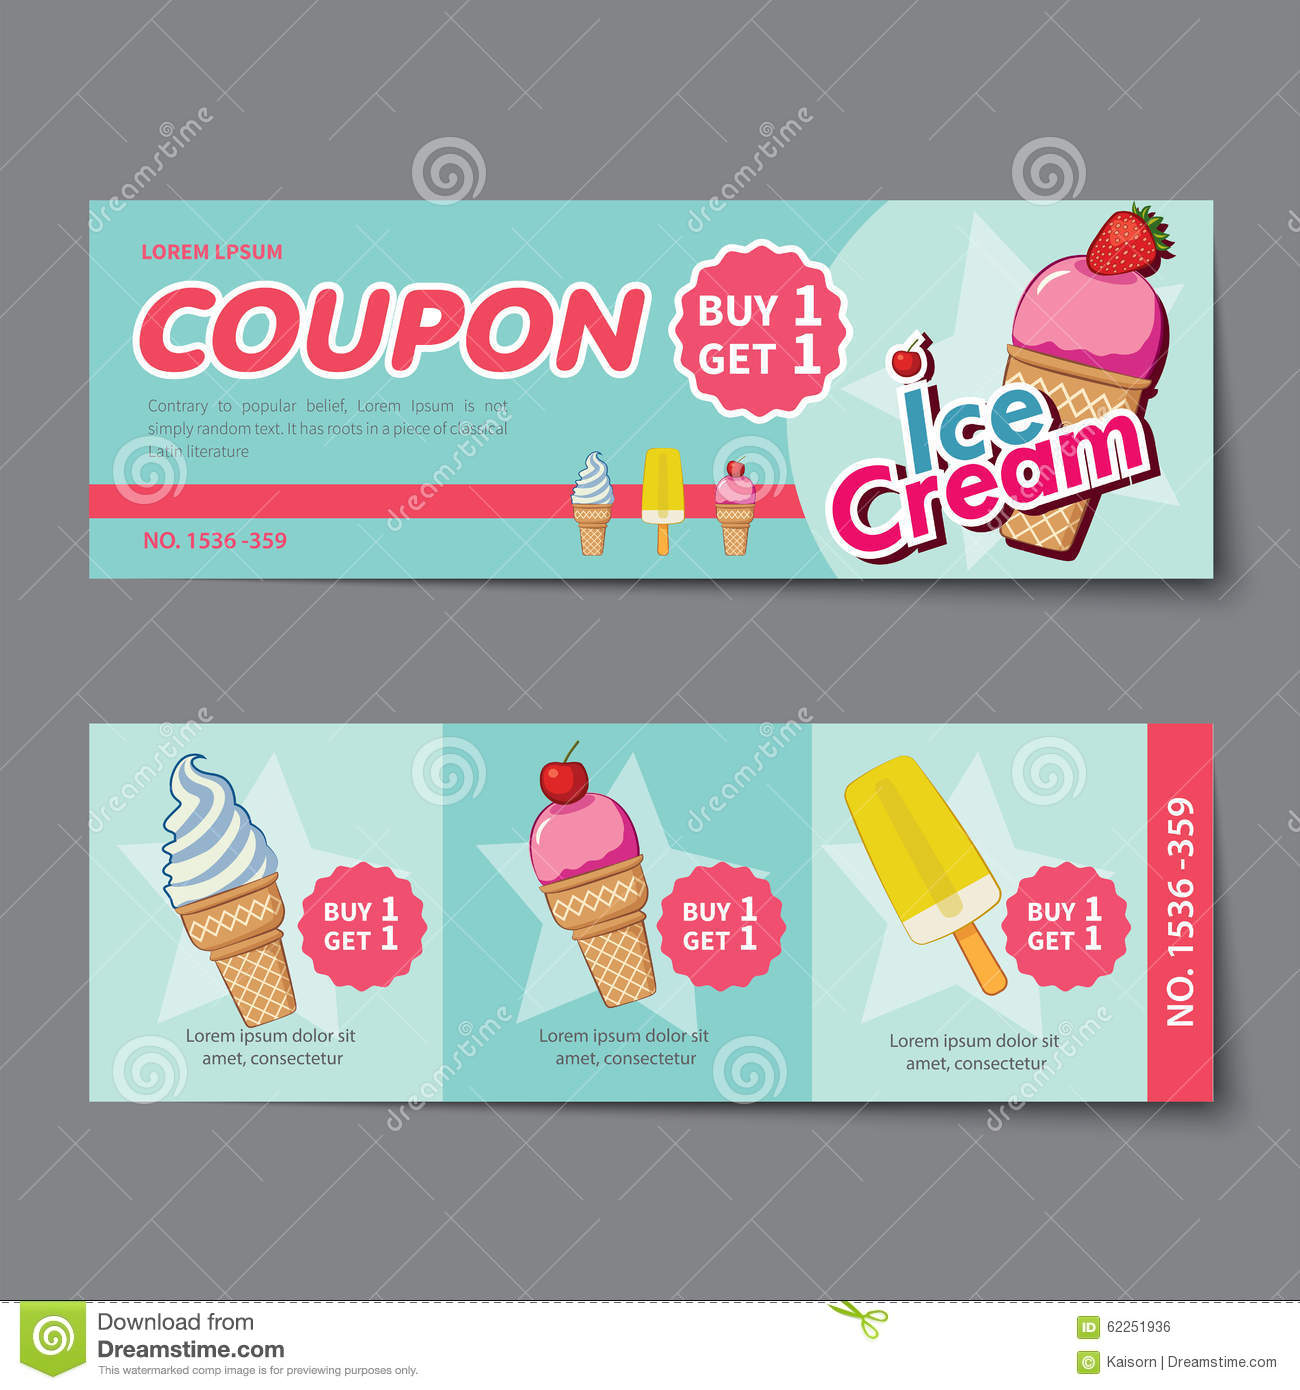 Discount coupon for estrace cream